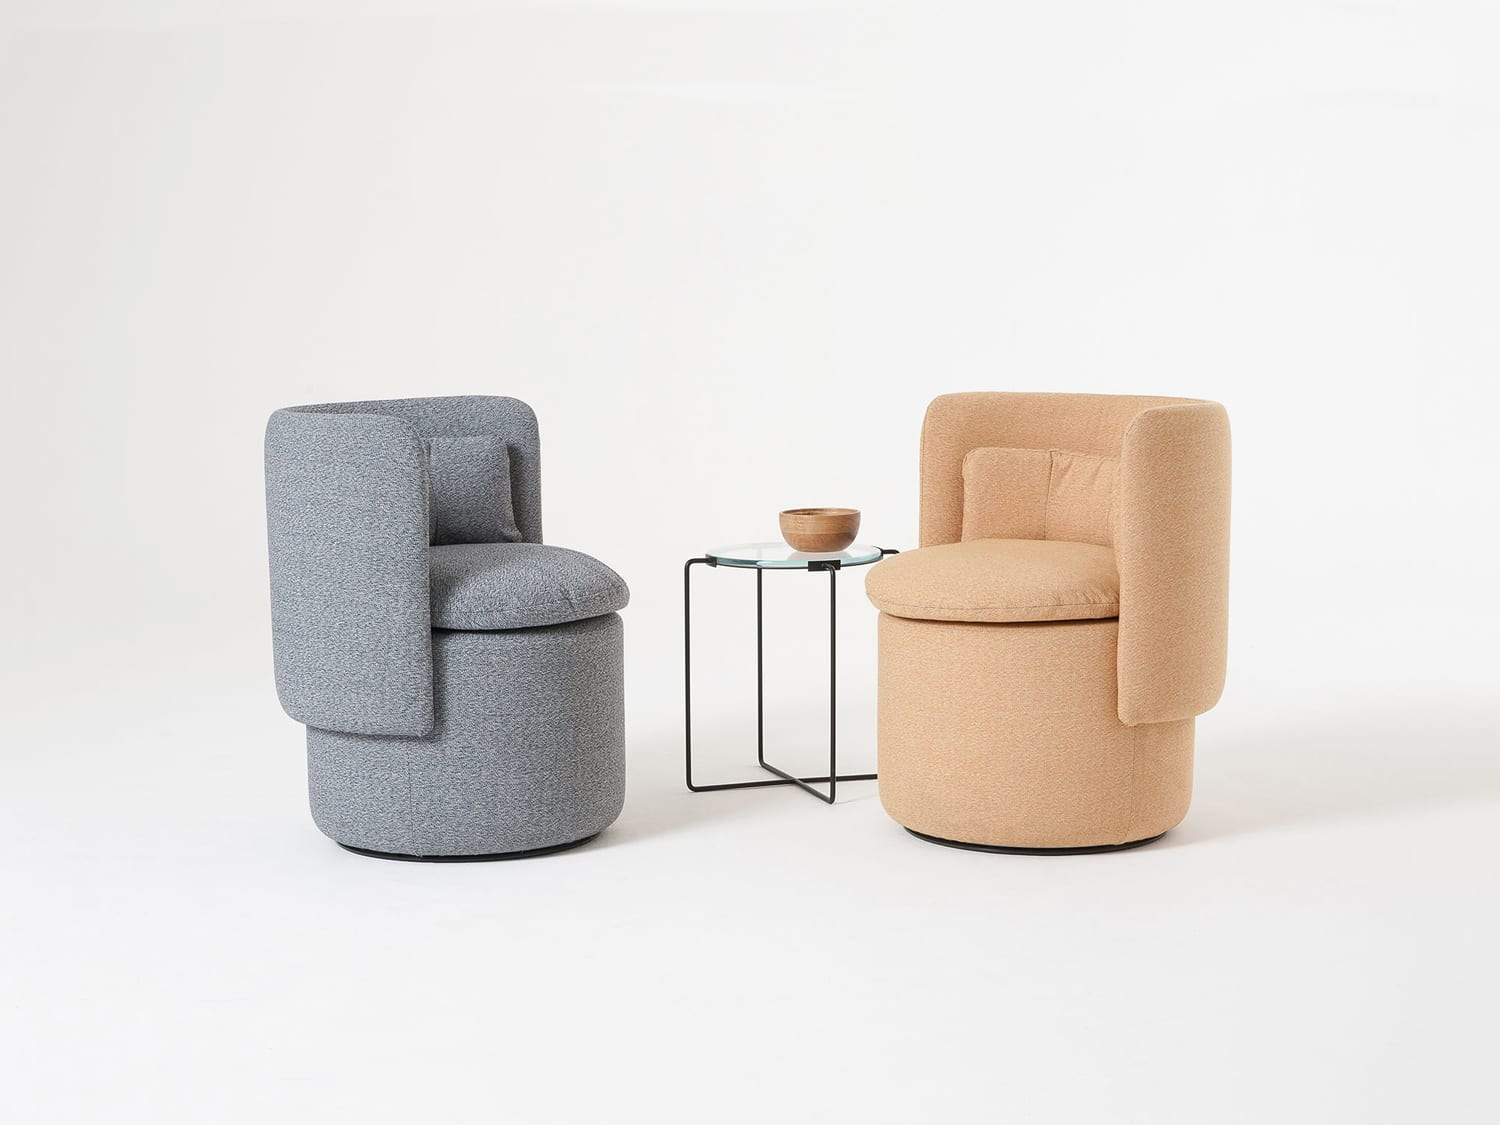 Group Armchair by Philippe Malouin for SCP at Maison & Objet 2018 | Yellowtrace